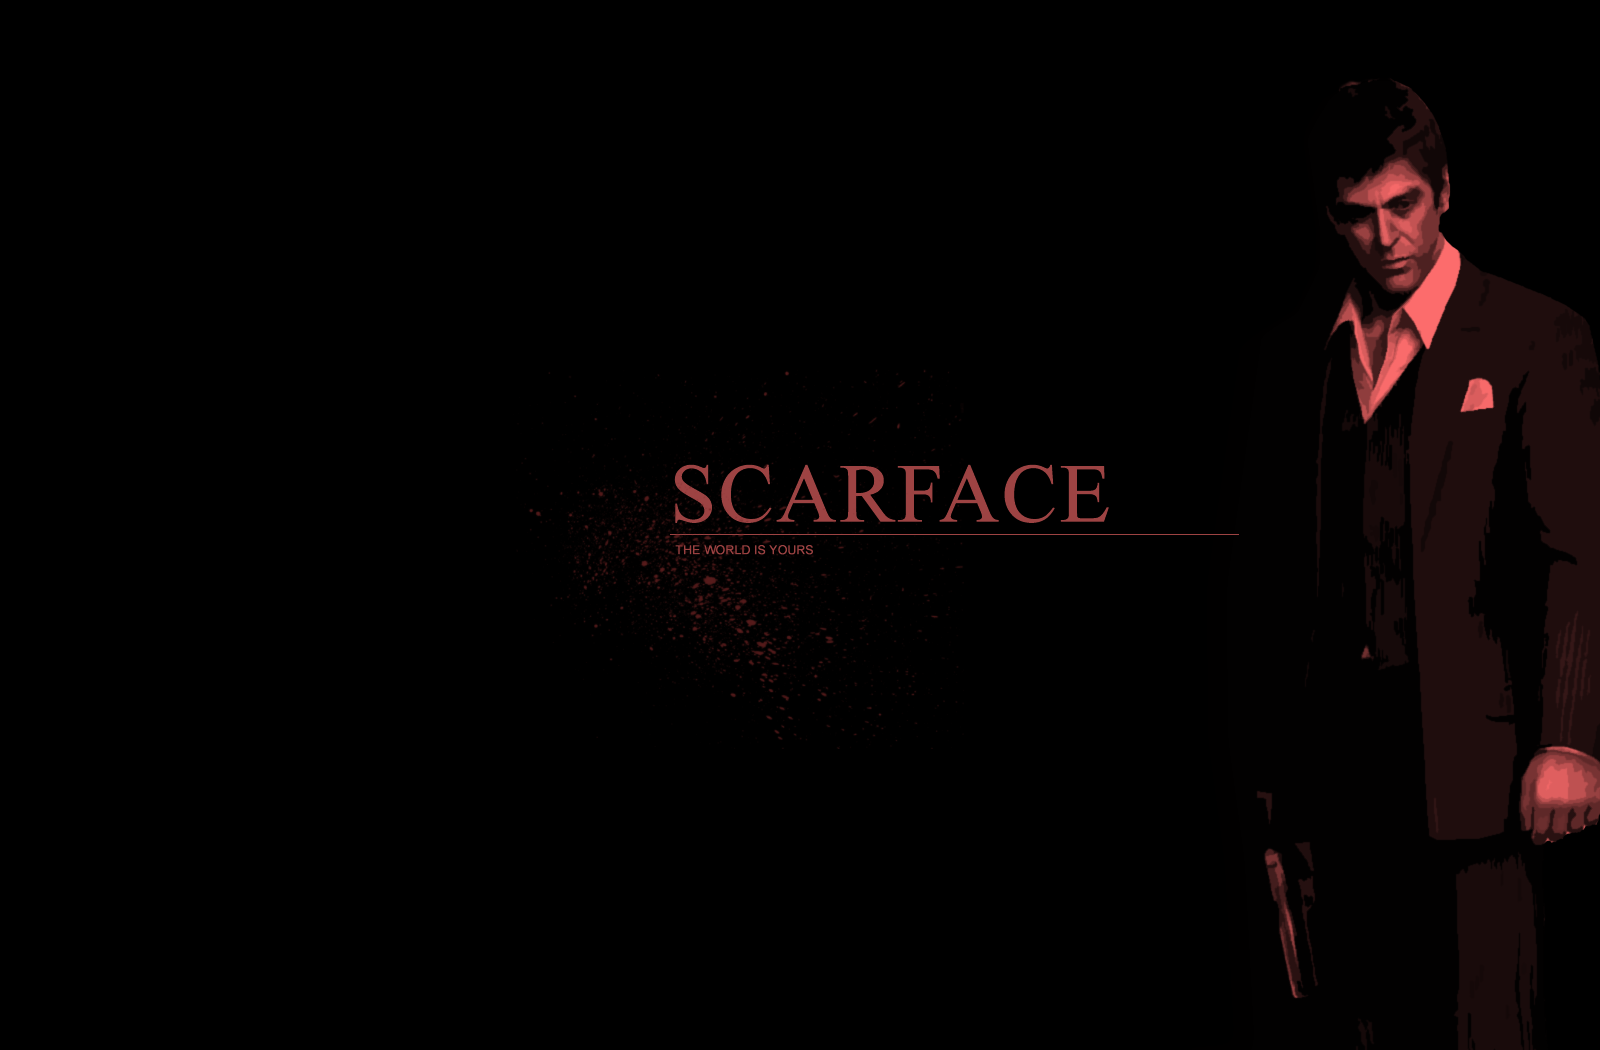 Scarface hd wallpapers wallpapersafari - Scarface wallpaper iphone ...